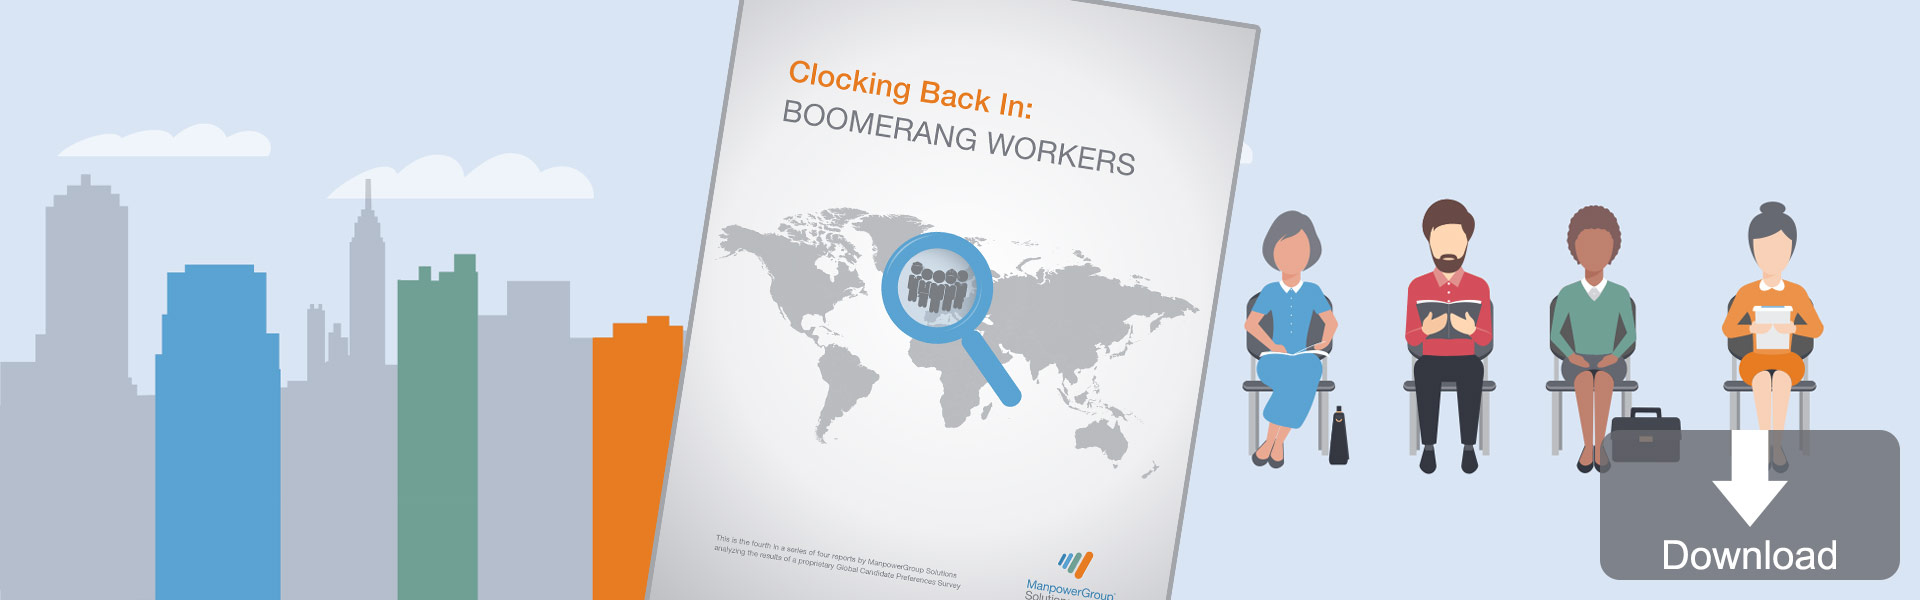 Clocking Back In: Boomerang Workers